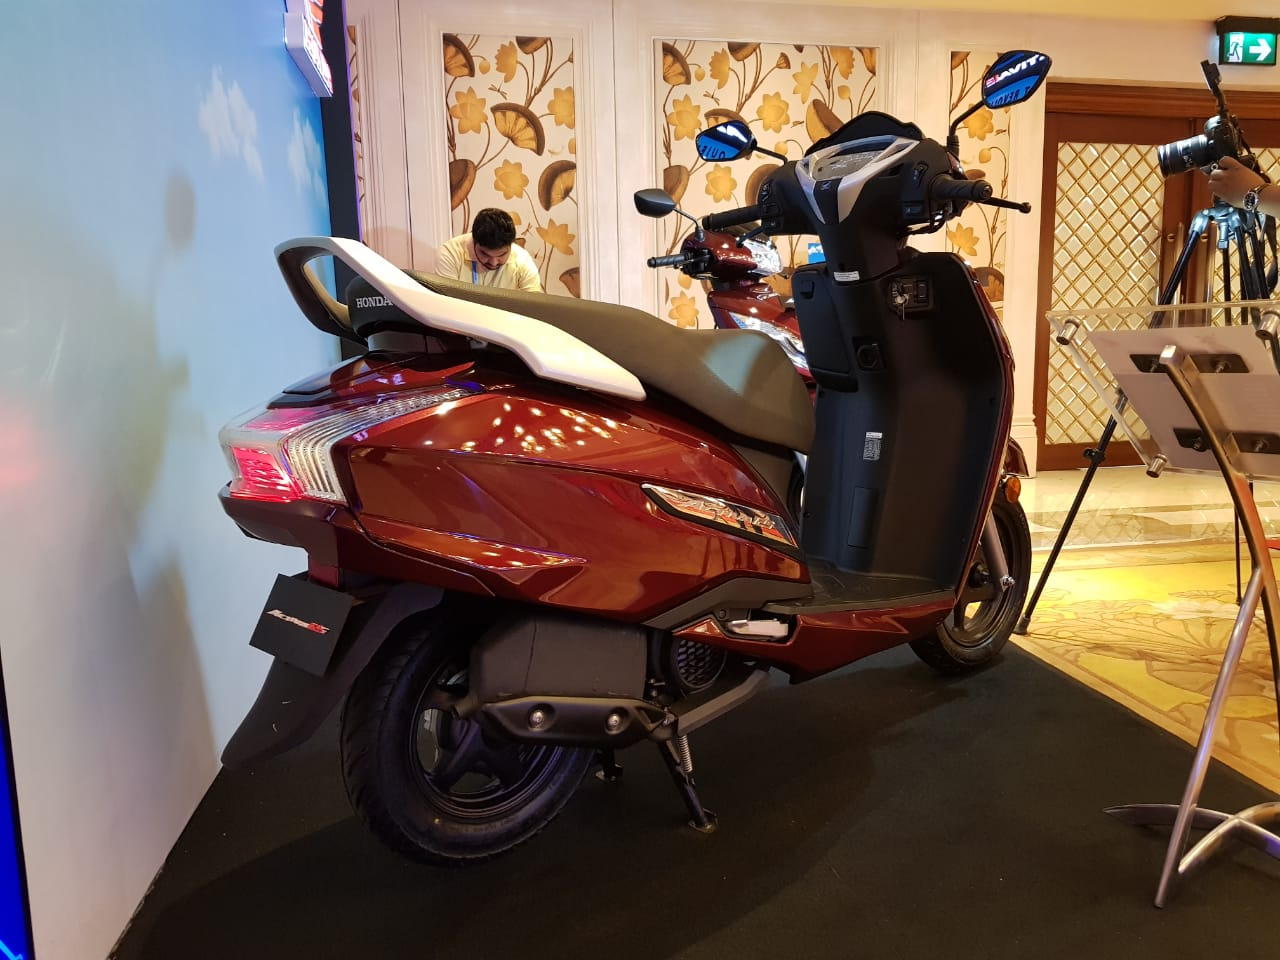 Honda Activa 125 Bs6 Launched 5 Things To Know